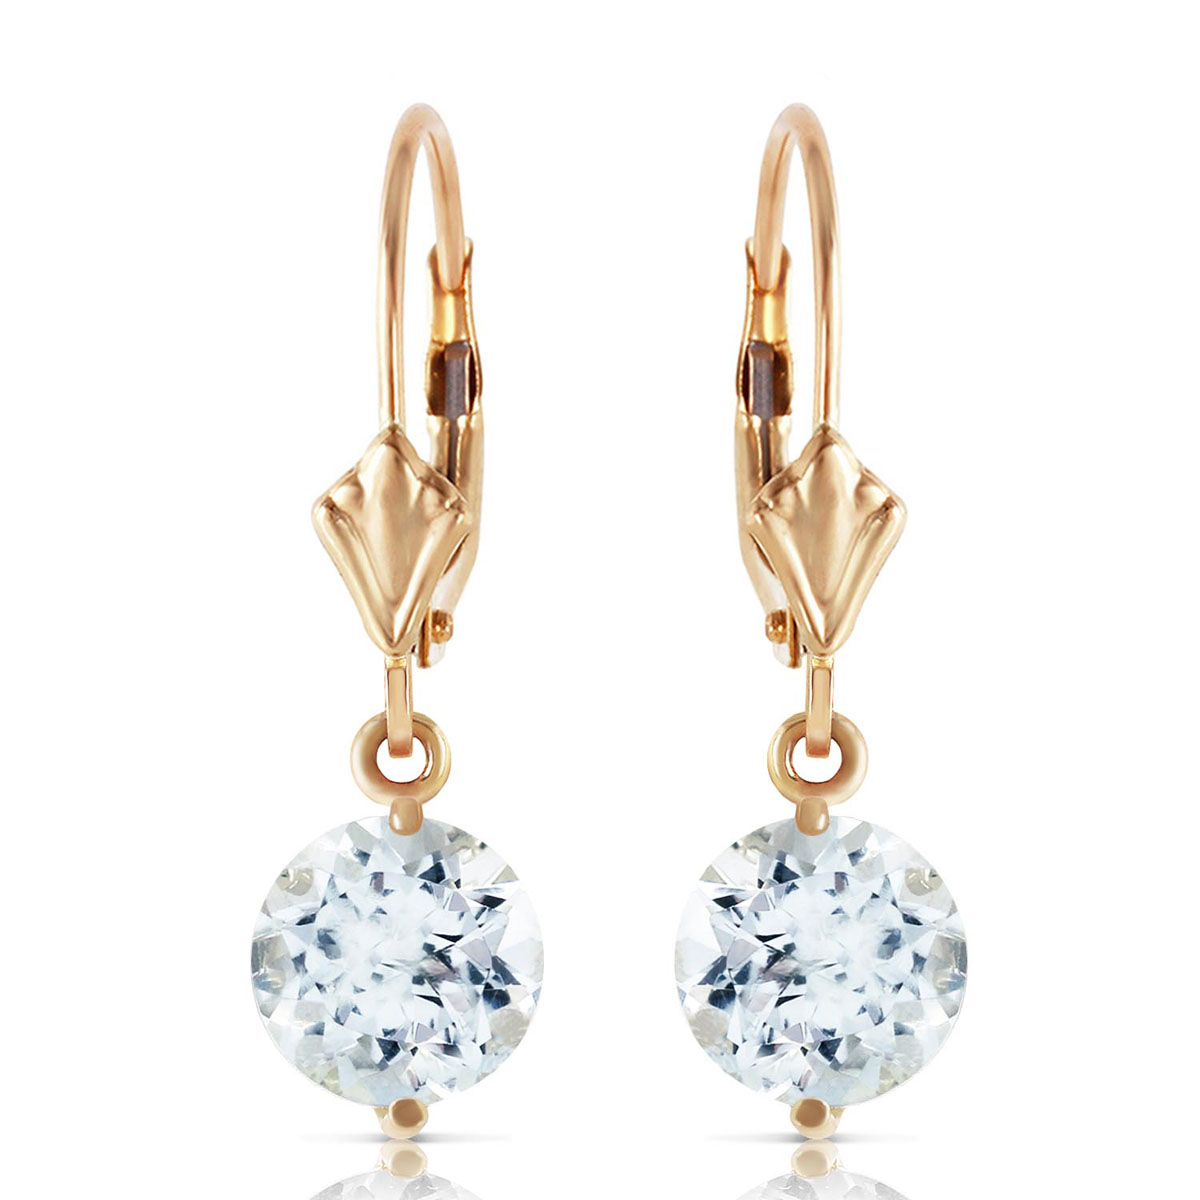 Aquamarine Drop Earrings 3.1 ctw in 9ct Gold